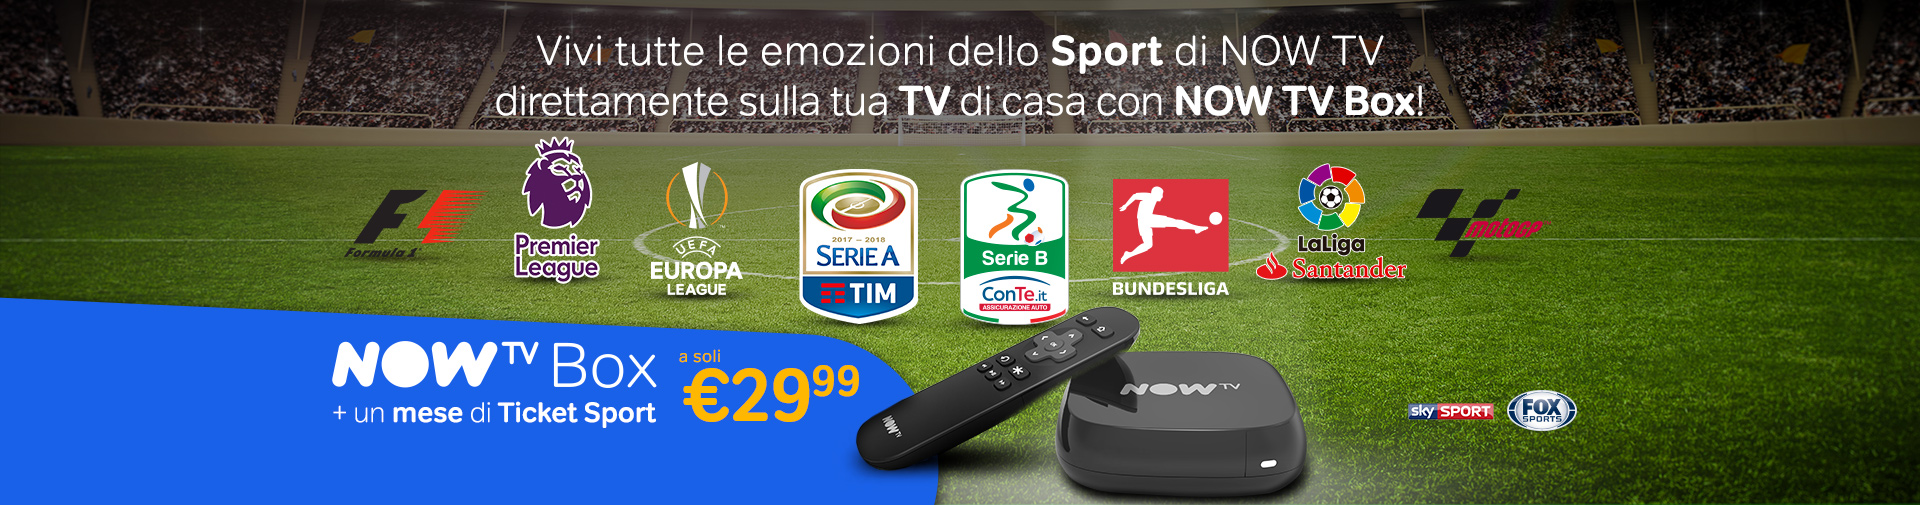 Loghi Sport + TV BOX